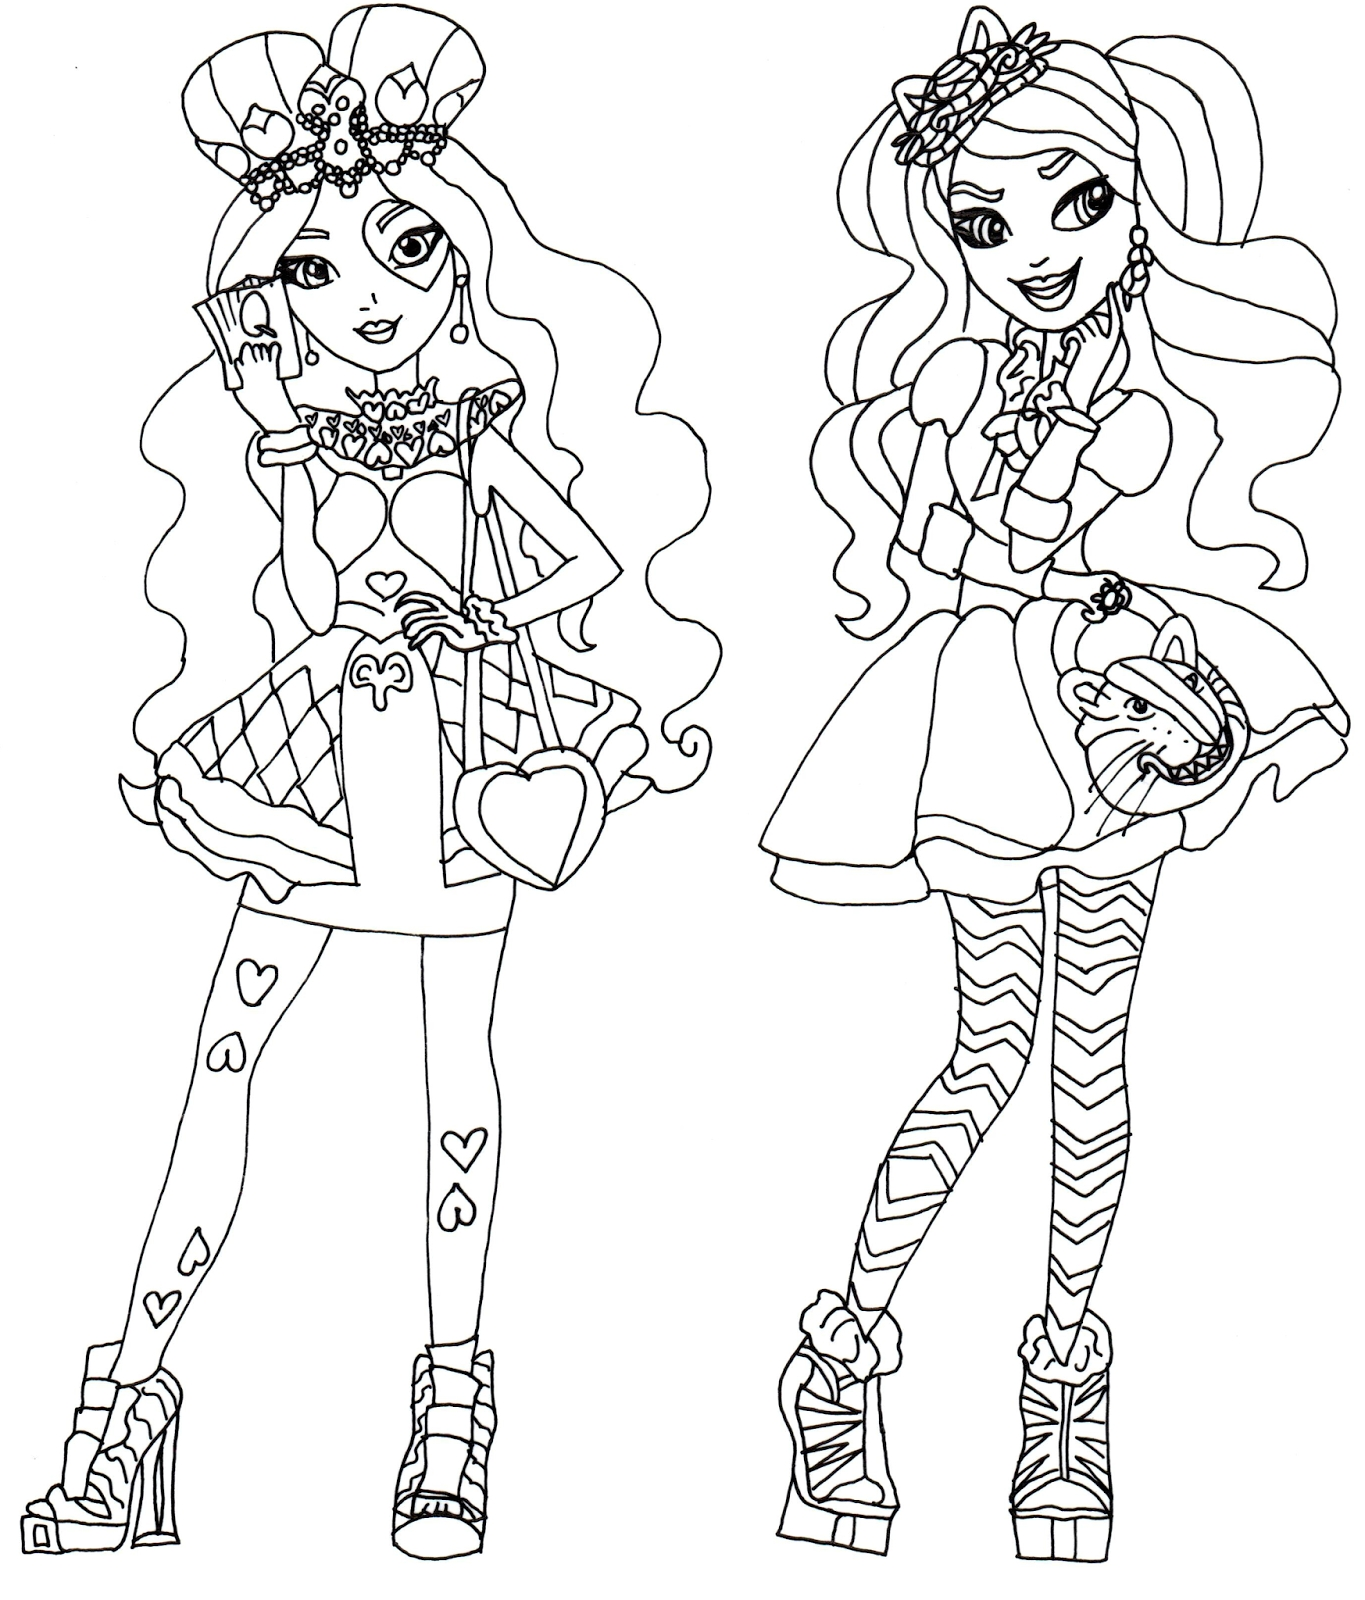 ever after high coloring pages - lizzie hearts and kitty cheshire ever